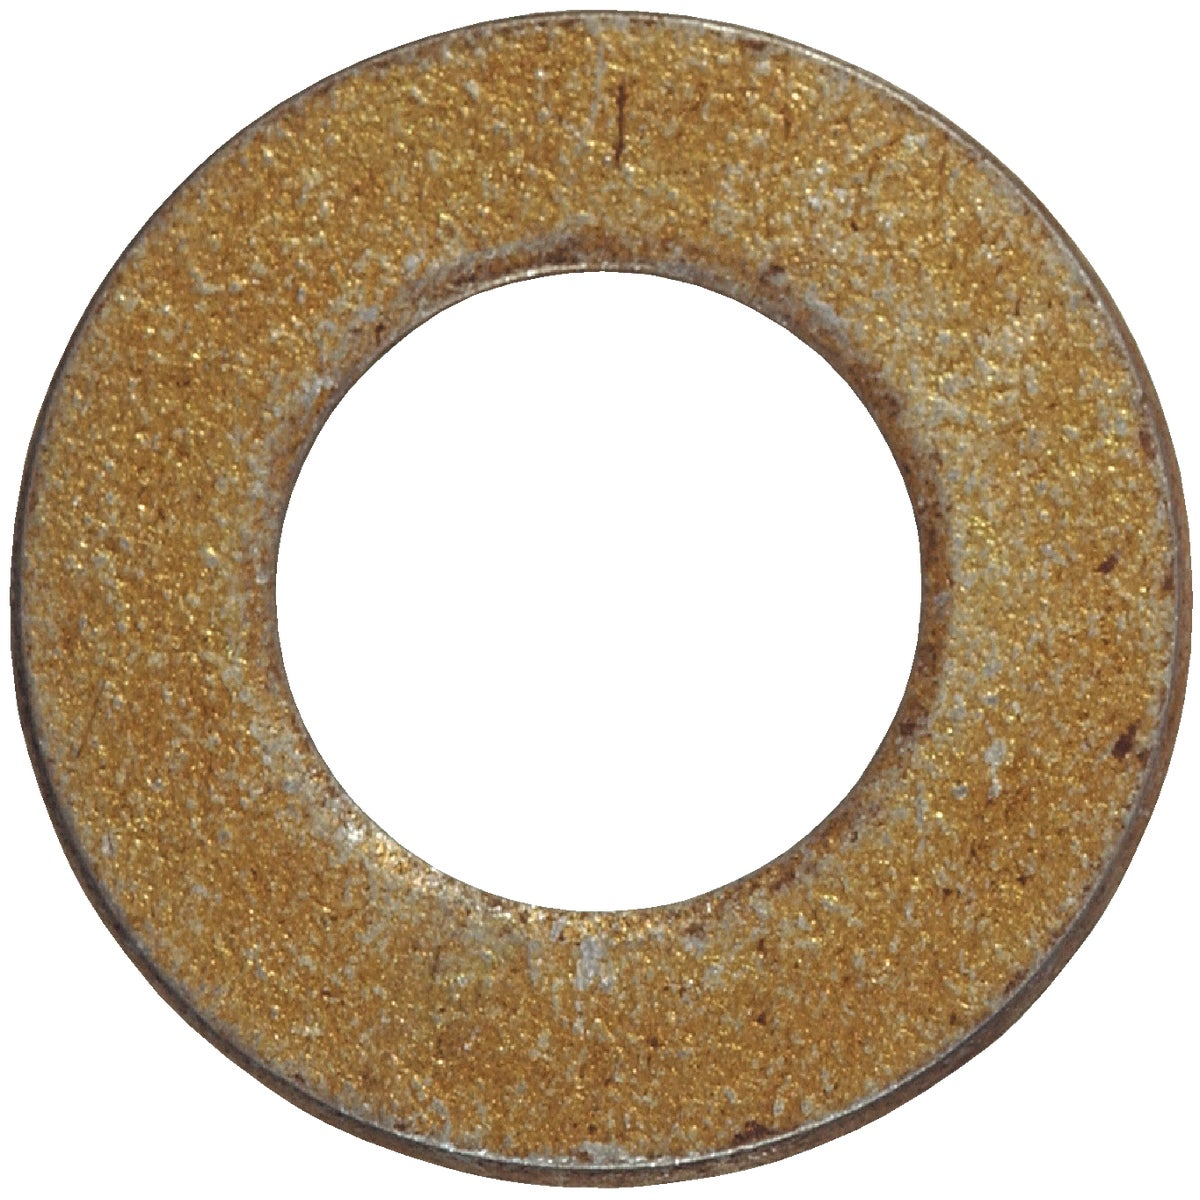 "3/4"" SAE FLAT WASHER"